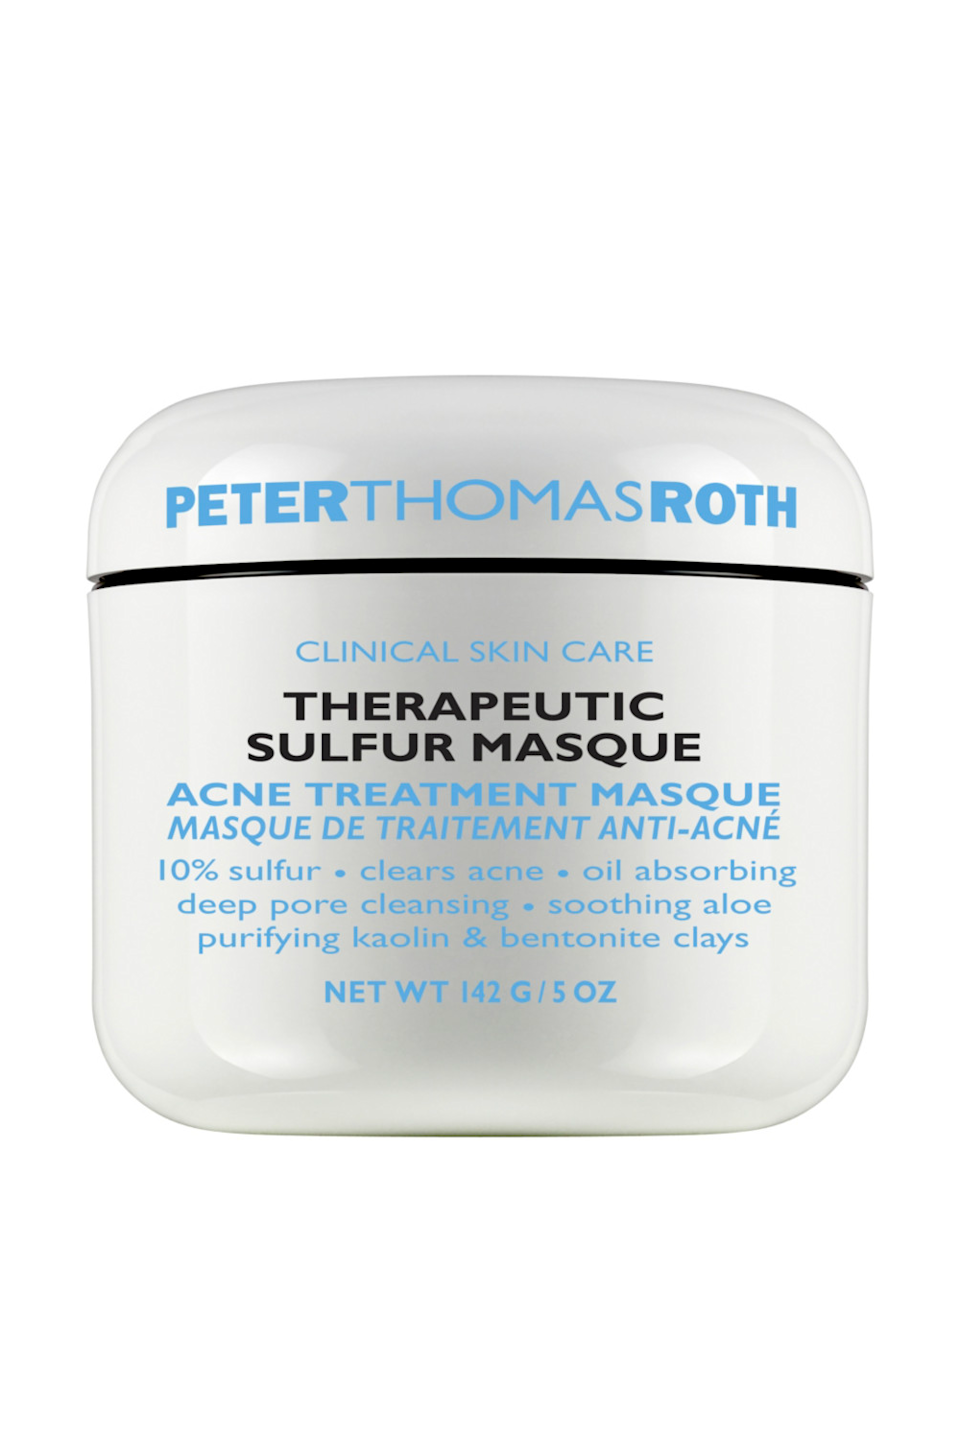 "<p><strong>Peter Thomas Roth</strong></p><p>ulta.com</p><p><strong>$52.00</strong></p><p><a href=""https://go.redirectingat.com?id=74968X1596630&url=https%3A%2F%2Fwww.ulta.com%2Ftherapeutic-sulfur-acne-masque%3FproductId%3DxlsImpprod11271053&sref=https%3A%2F%2Fwww.cosmopolitan.com%2Fstyle-beauty%2Fbeauty%2Fg36176731%2Fbest-clay-face-masks%2F"" rel=""nofollow noopener"" target=""_blank"" data-ylk=""slk:Shop Now"" class=""link rapid-noclick-resp"">Shop Now</a></p><p>FYI: Sulfur is actually a pretty genius ingredient for treating breakouts—it's a natural exfoliant that <strong>helps prevent clogged pores while also keeping your skin nice and smooth</strong>. And when combined with oil-absorbing clays and hydrating aloe vera, it becomes a super-impressive face mask (and, tbh, <a href=""https://www.cosmopolitan.com/style-beauty/beauty/g19645915/best-acne-spot-treatments/"" rel=""nofollow noopener"" target=""_blank"" data-ylk=""slk:spot treatment"" class=""link rapid-noclick-resp"">spot treatment</a>).</p>"